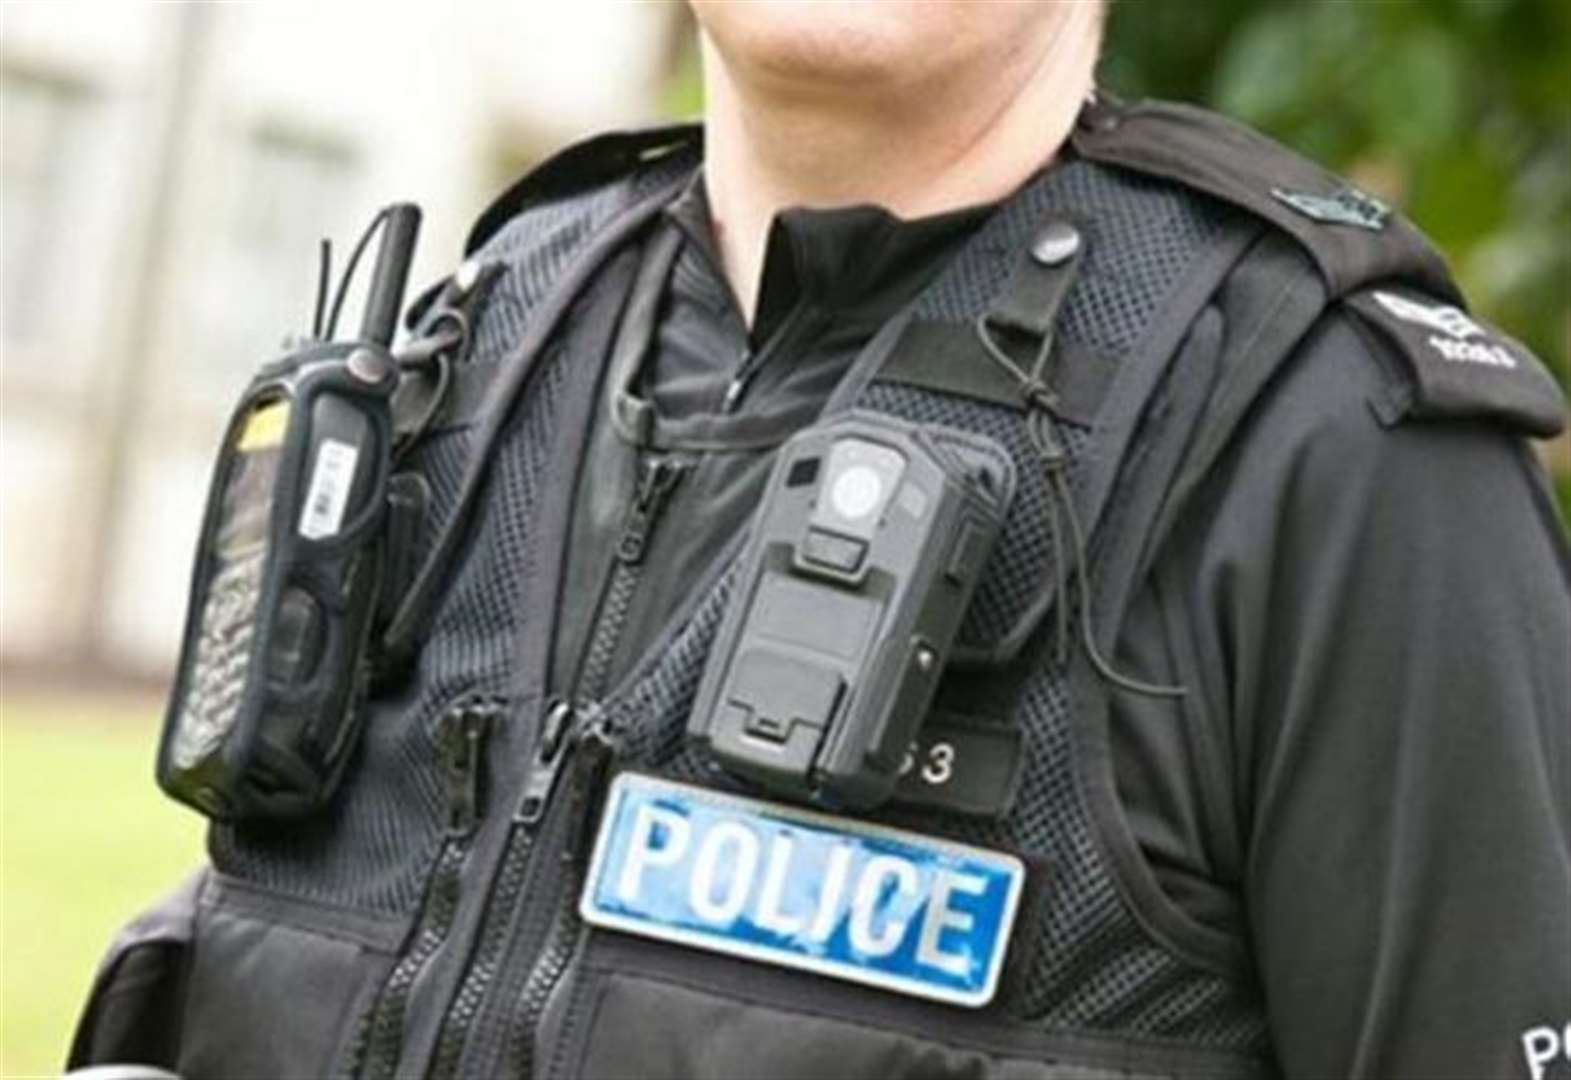 Store manager and police officer 'assaulted'